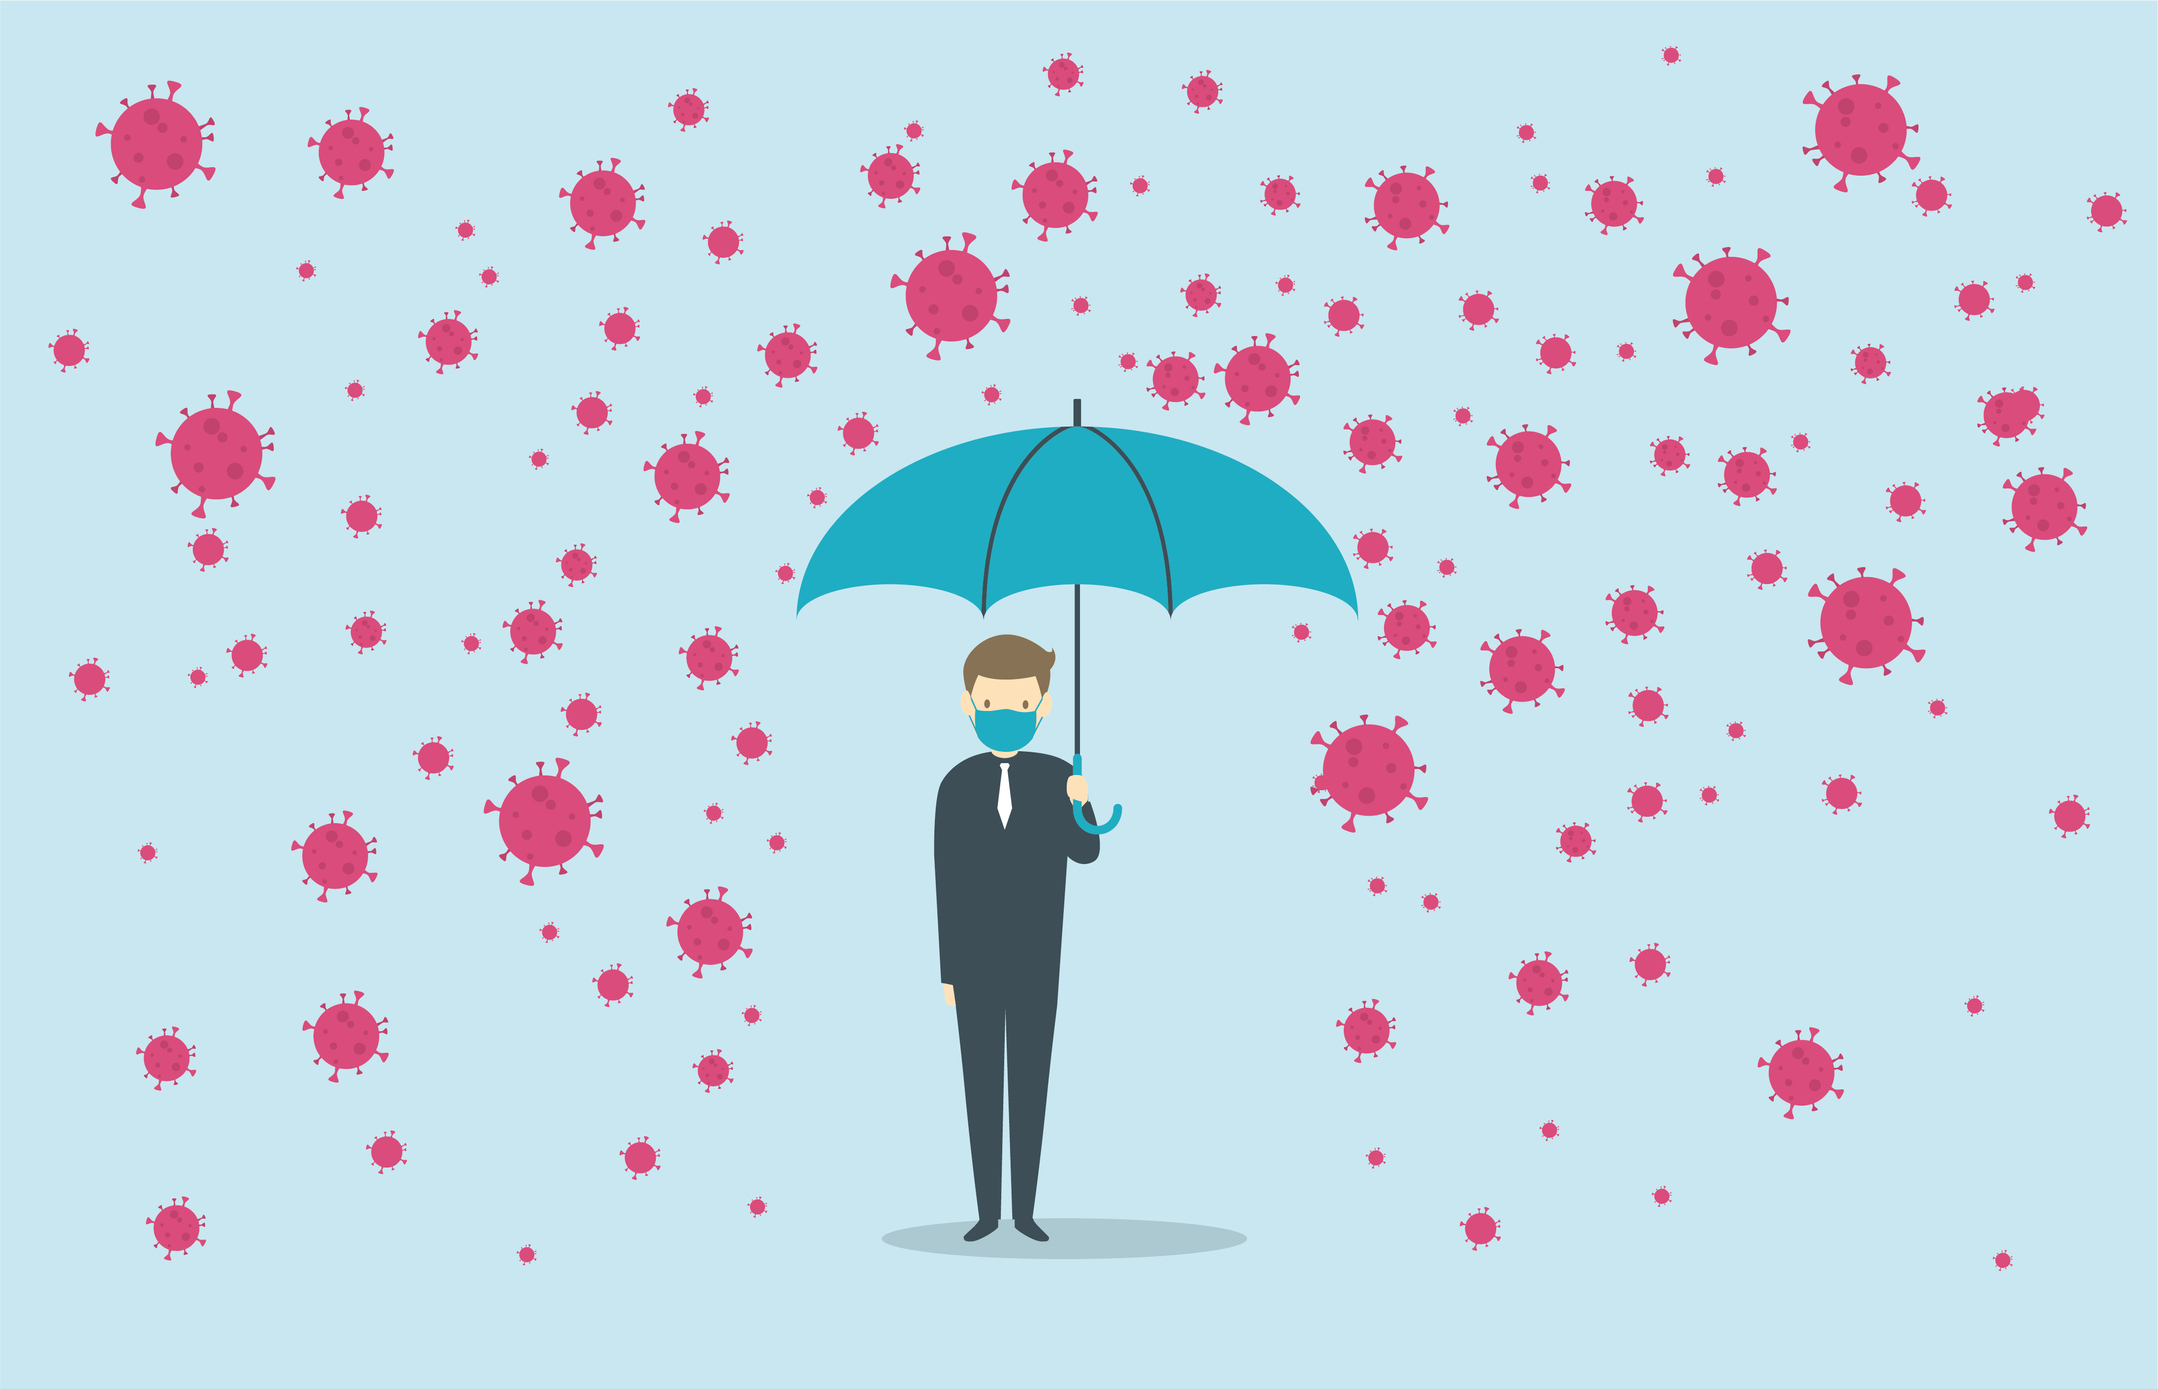 Man holding umbrella as coronavirus looms above with evil intent